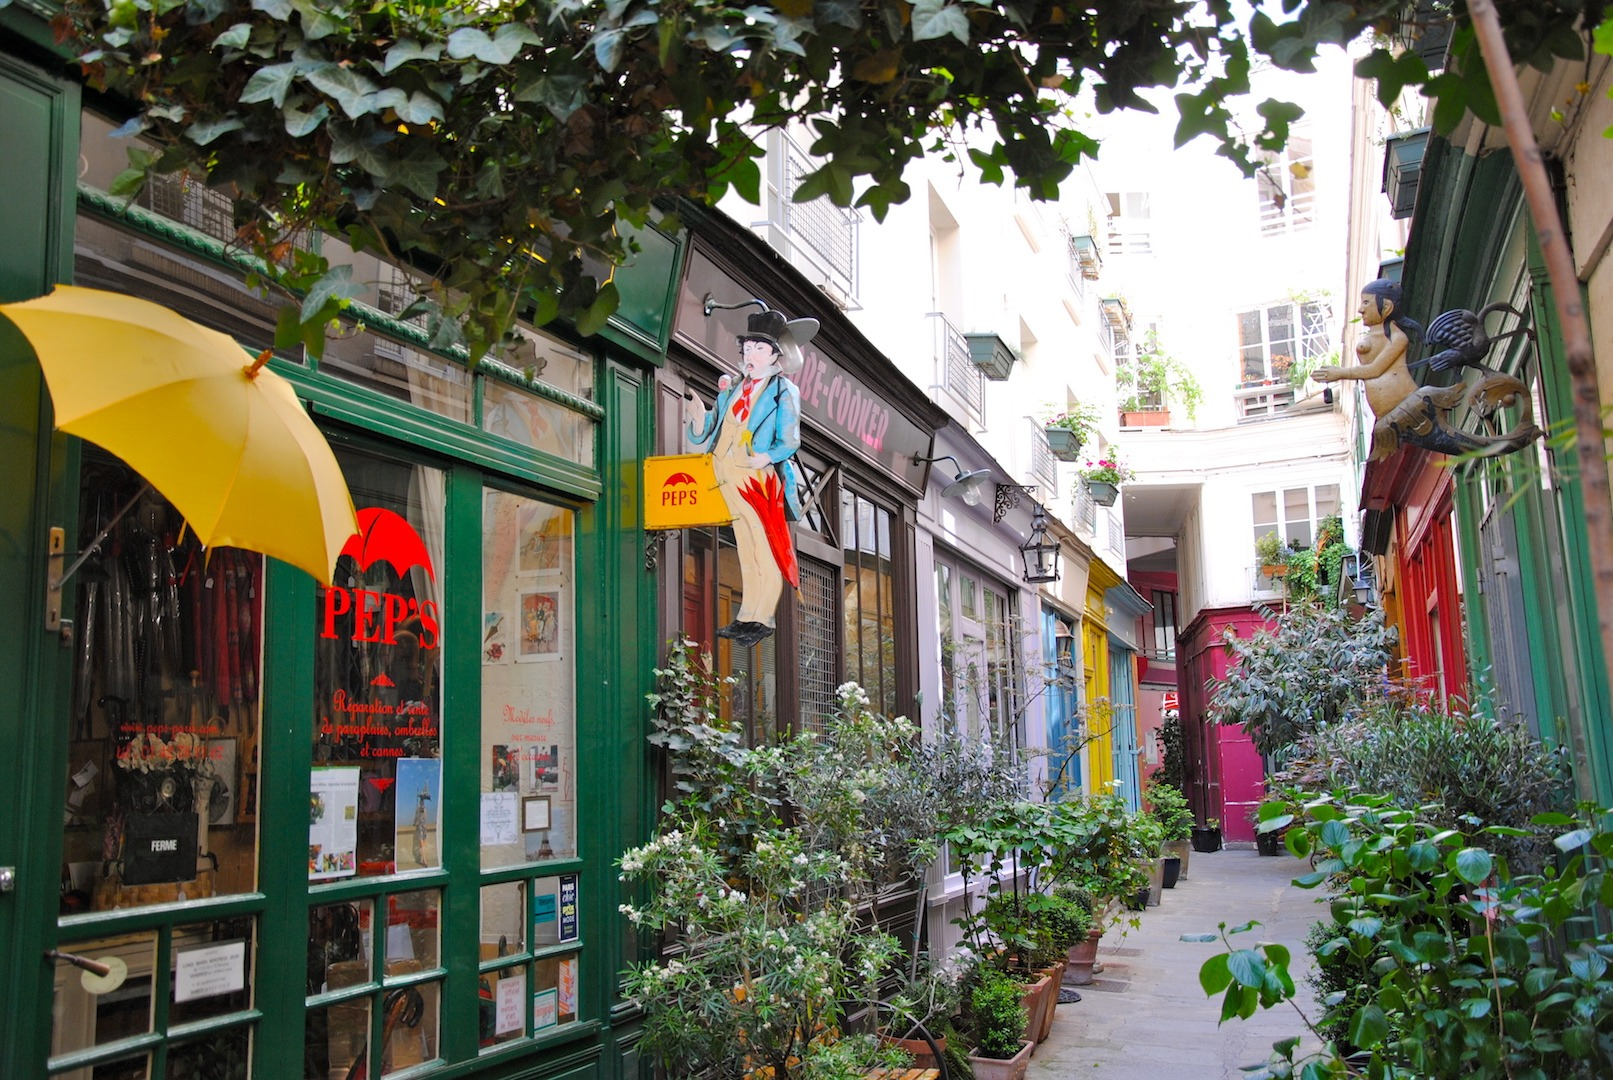 alleyway in Paris